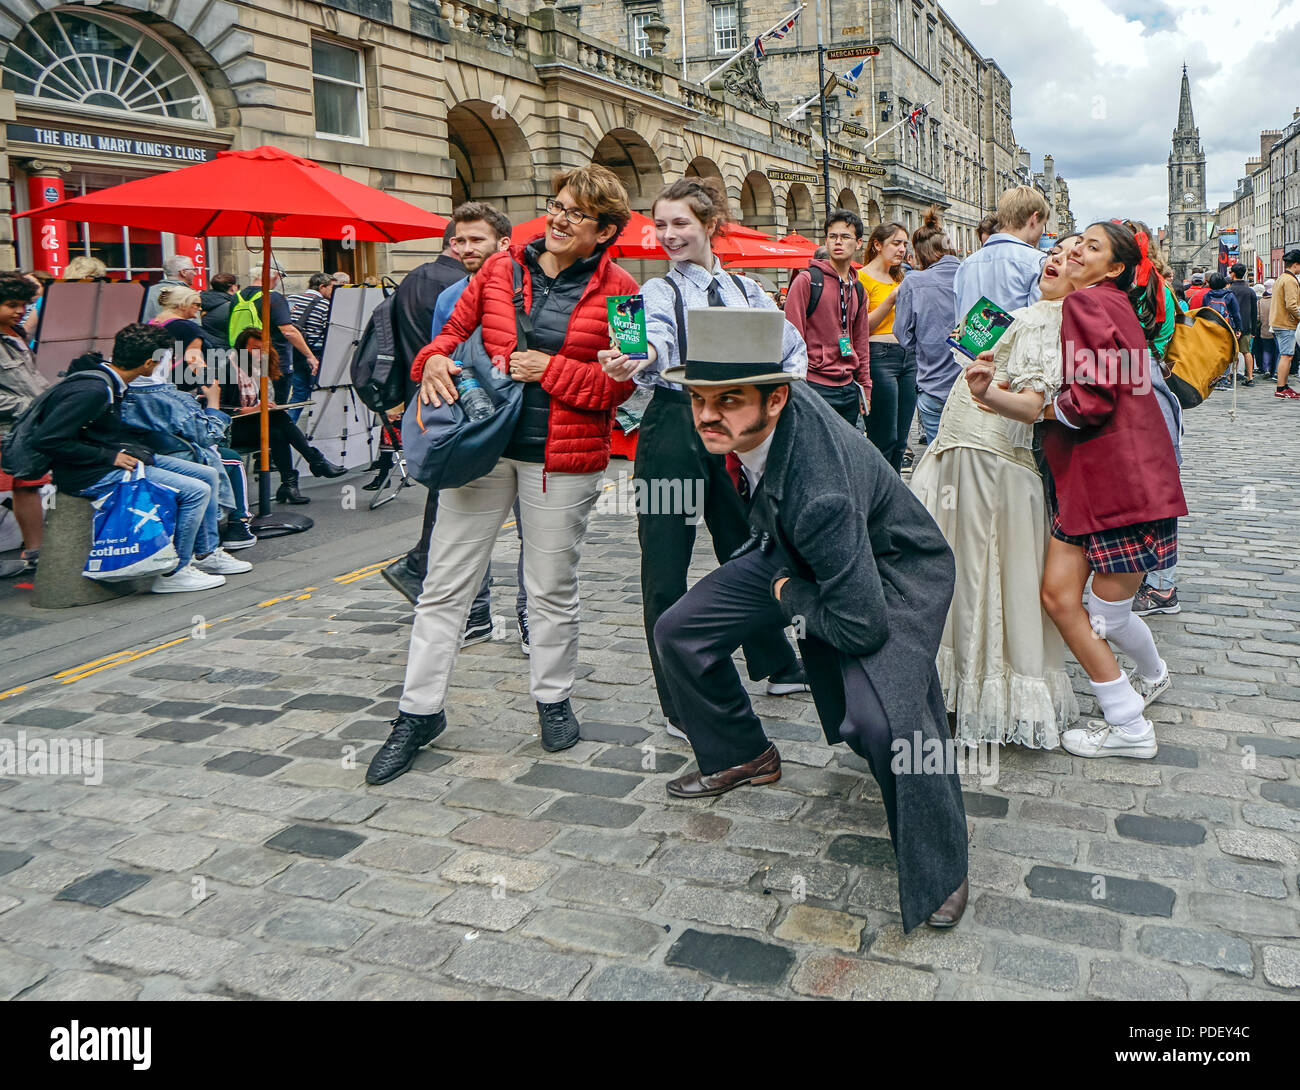 The Woman and the Canvas group performs at The Edinburgh Festival Fringe 2018 in High Street The Royal Mile Edinburgh Scotland UK - Stock Image